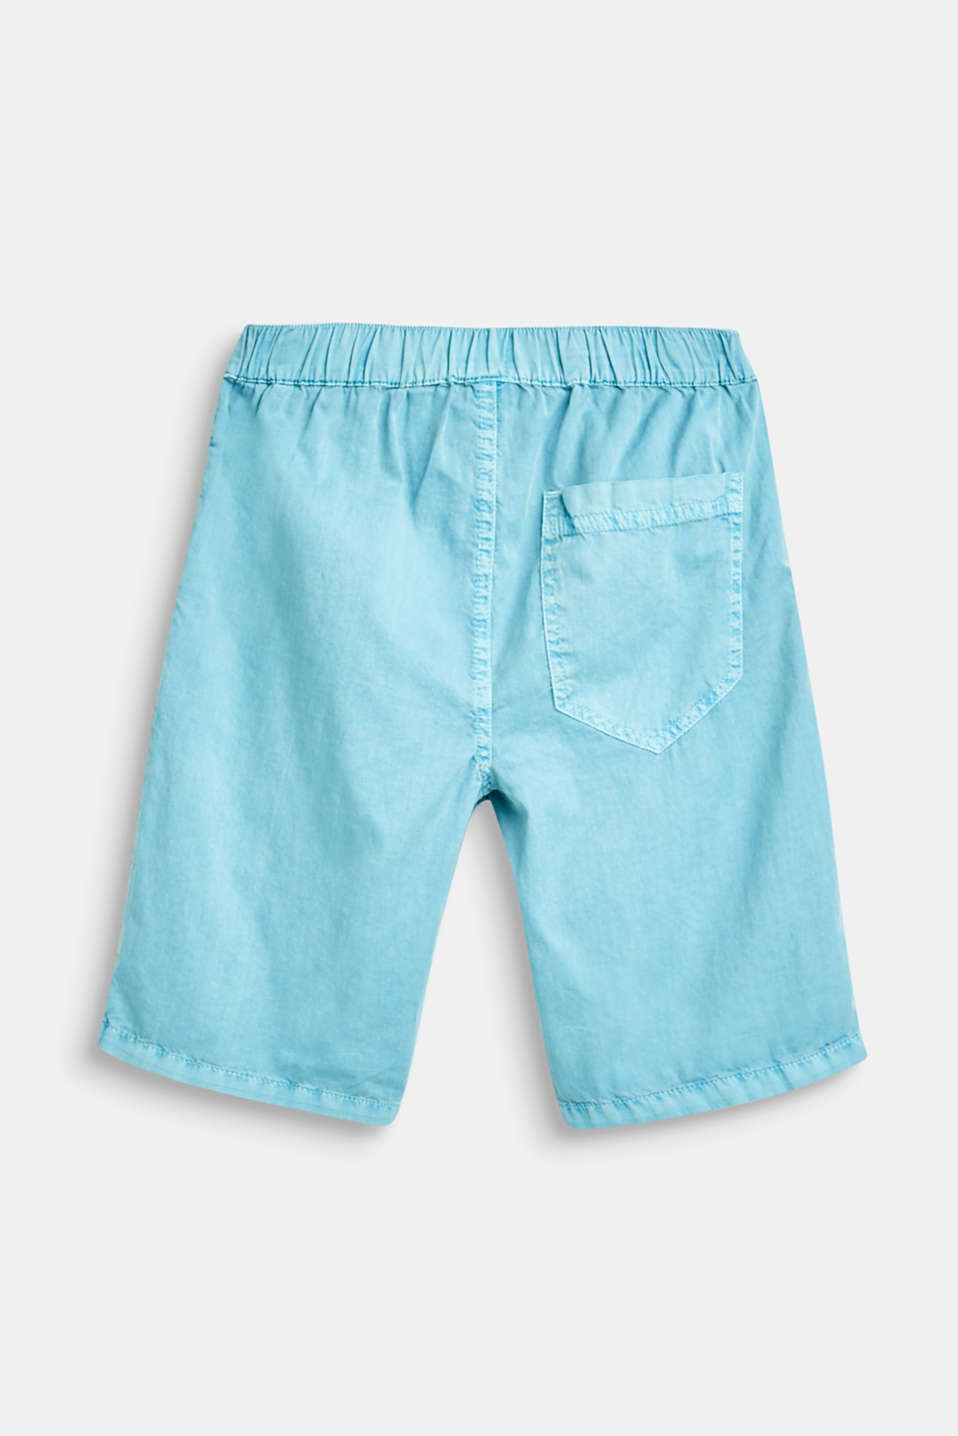 Woven cotton shorts with an elasticated waistband